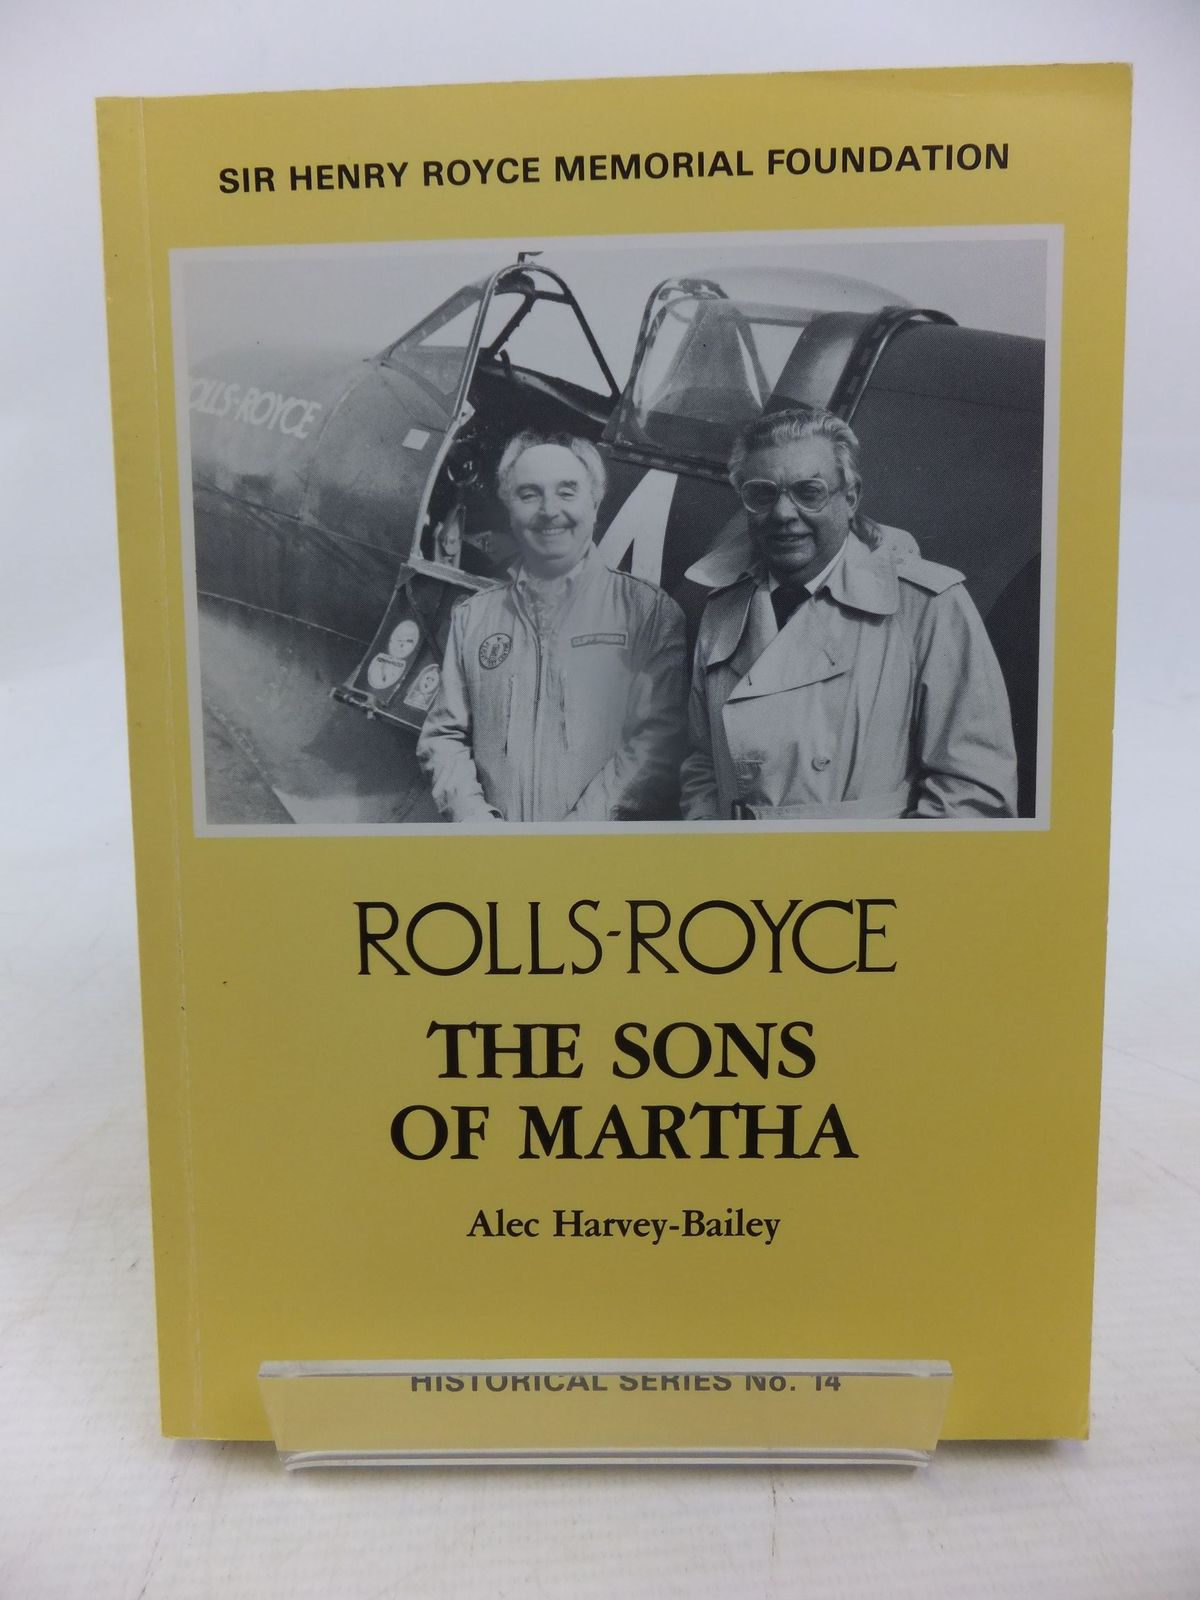 Photo of ROLLS-ROYCE THE SONS OF MARTHA written by Harvey-Bailey, Alec published by Sir Henry Royce Memorial Foundation (STOCK CODE: 1712060)  for sale by Stella & Rose's Books